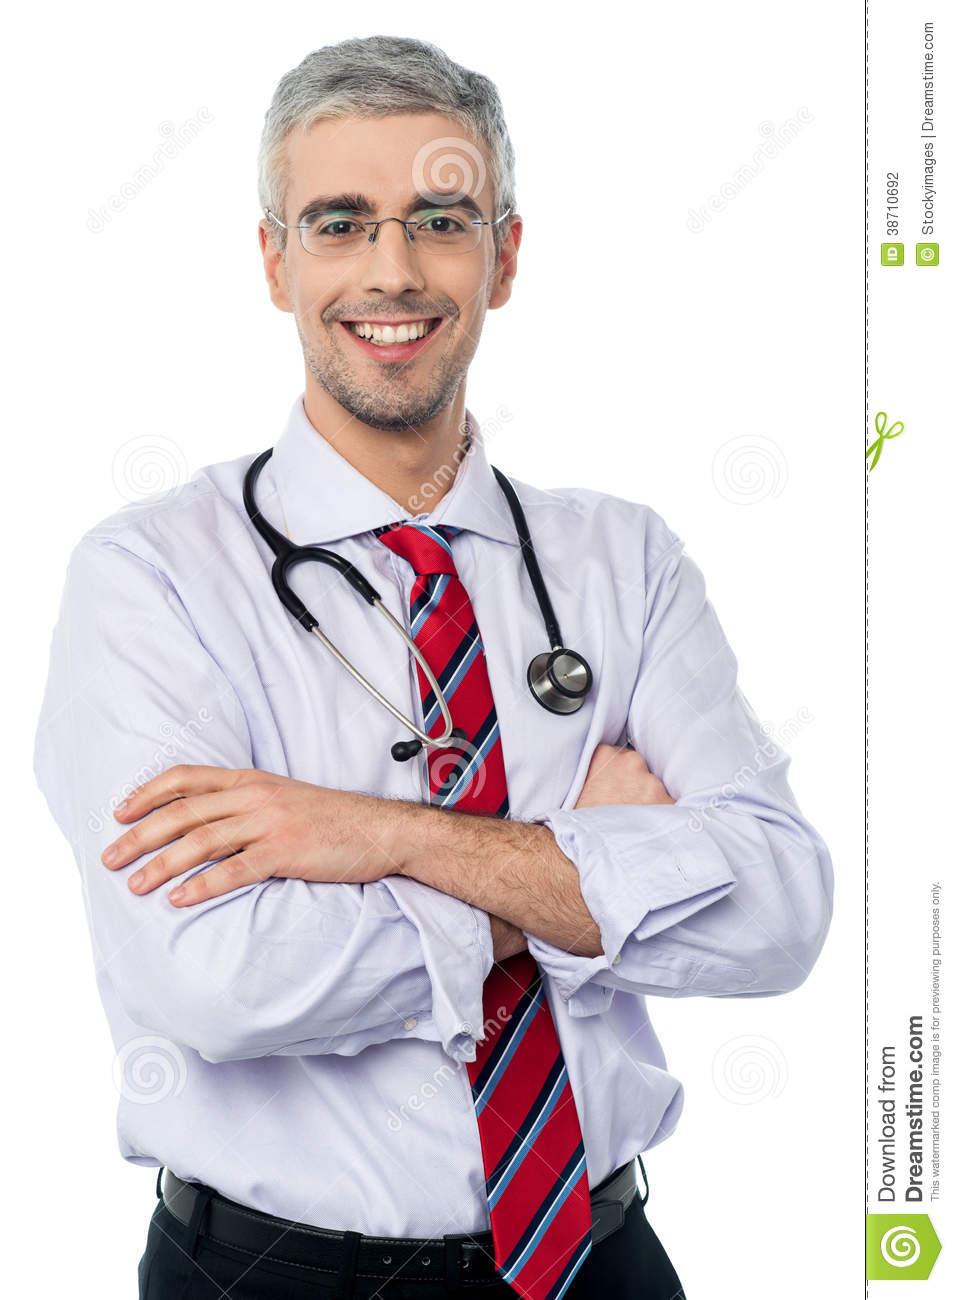 Experienced doctor with arms crossed